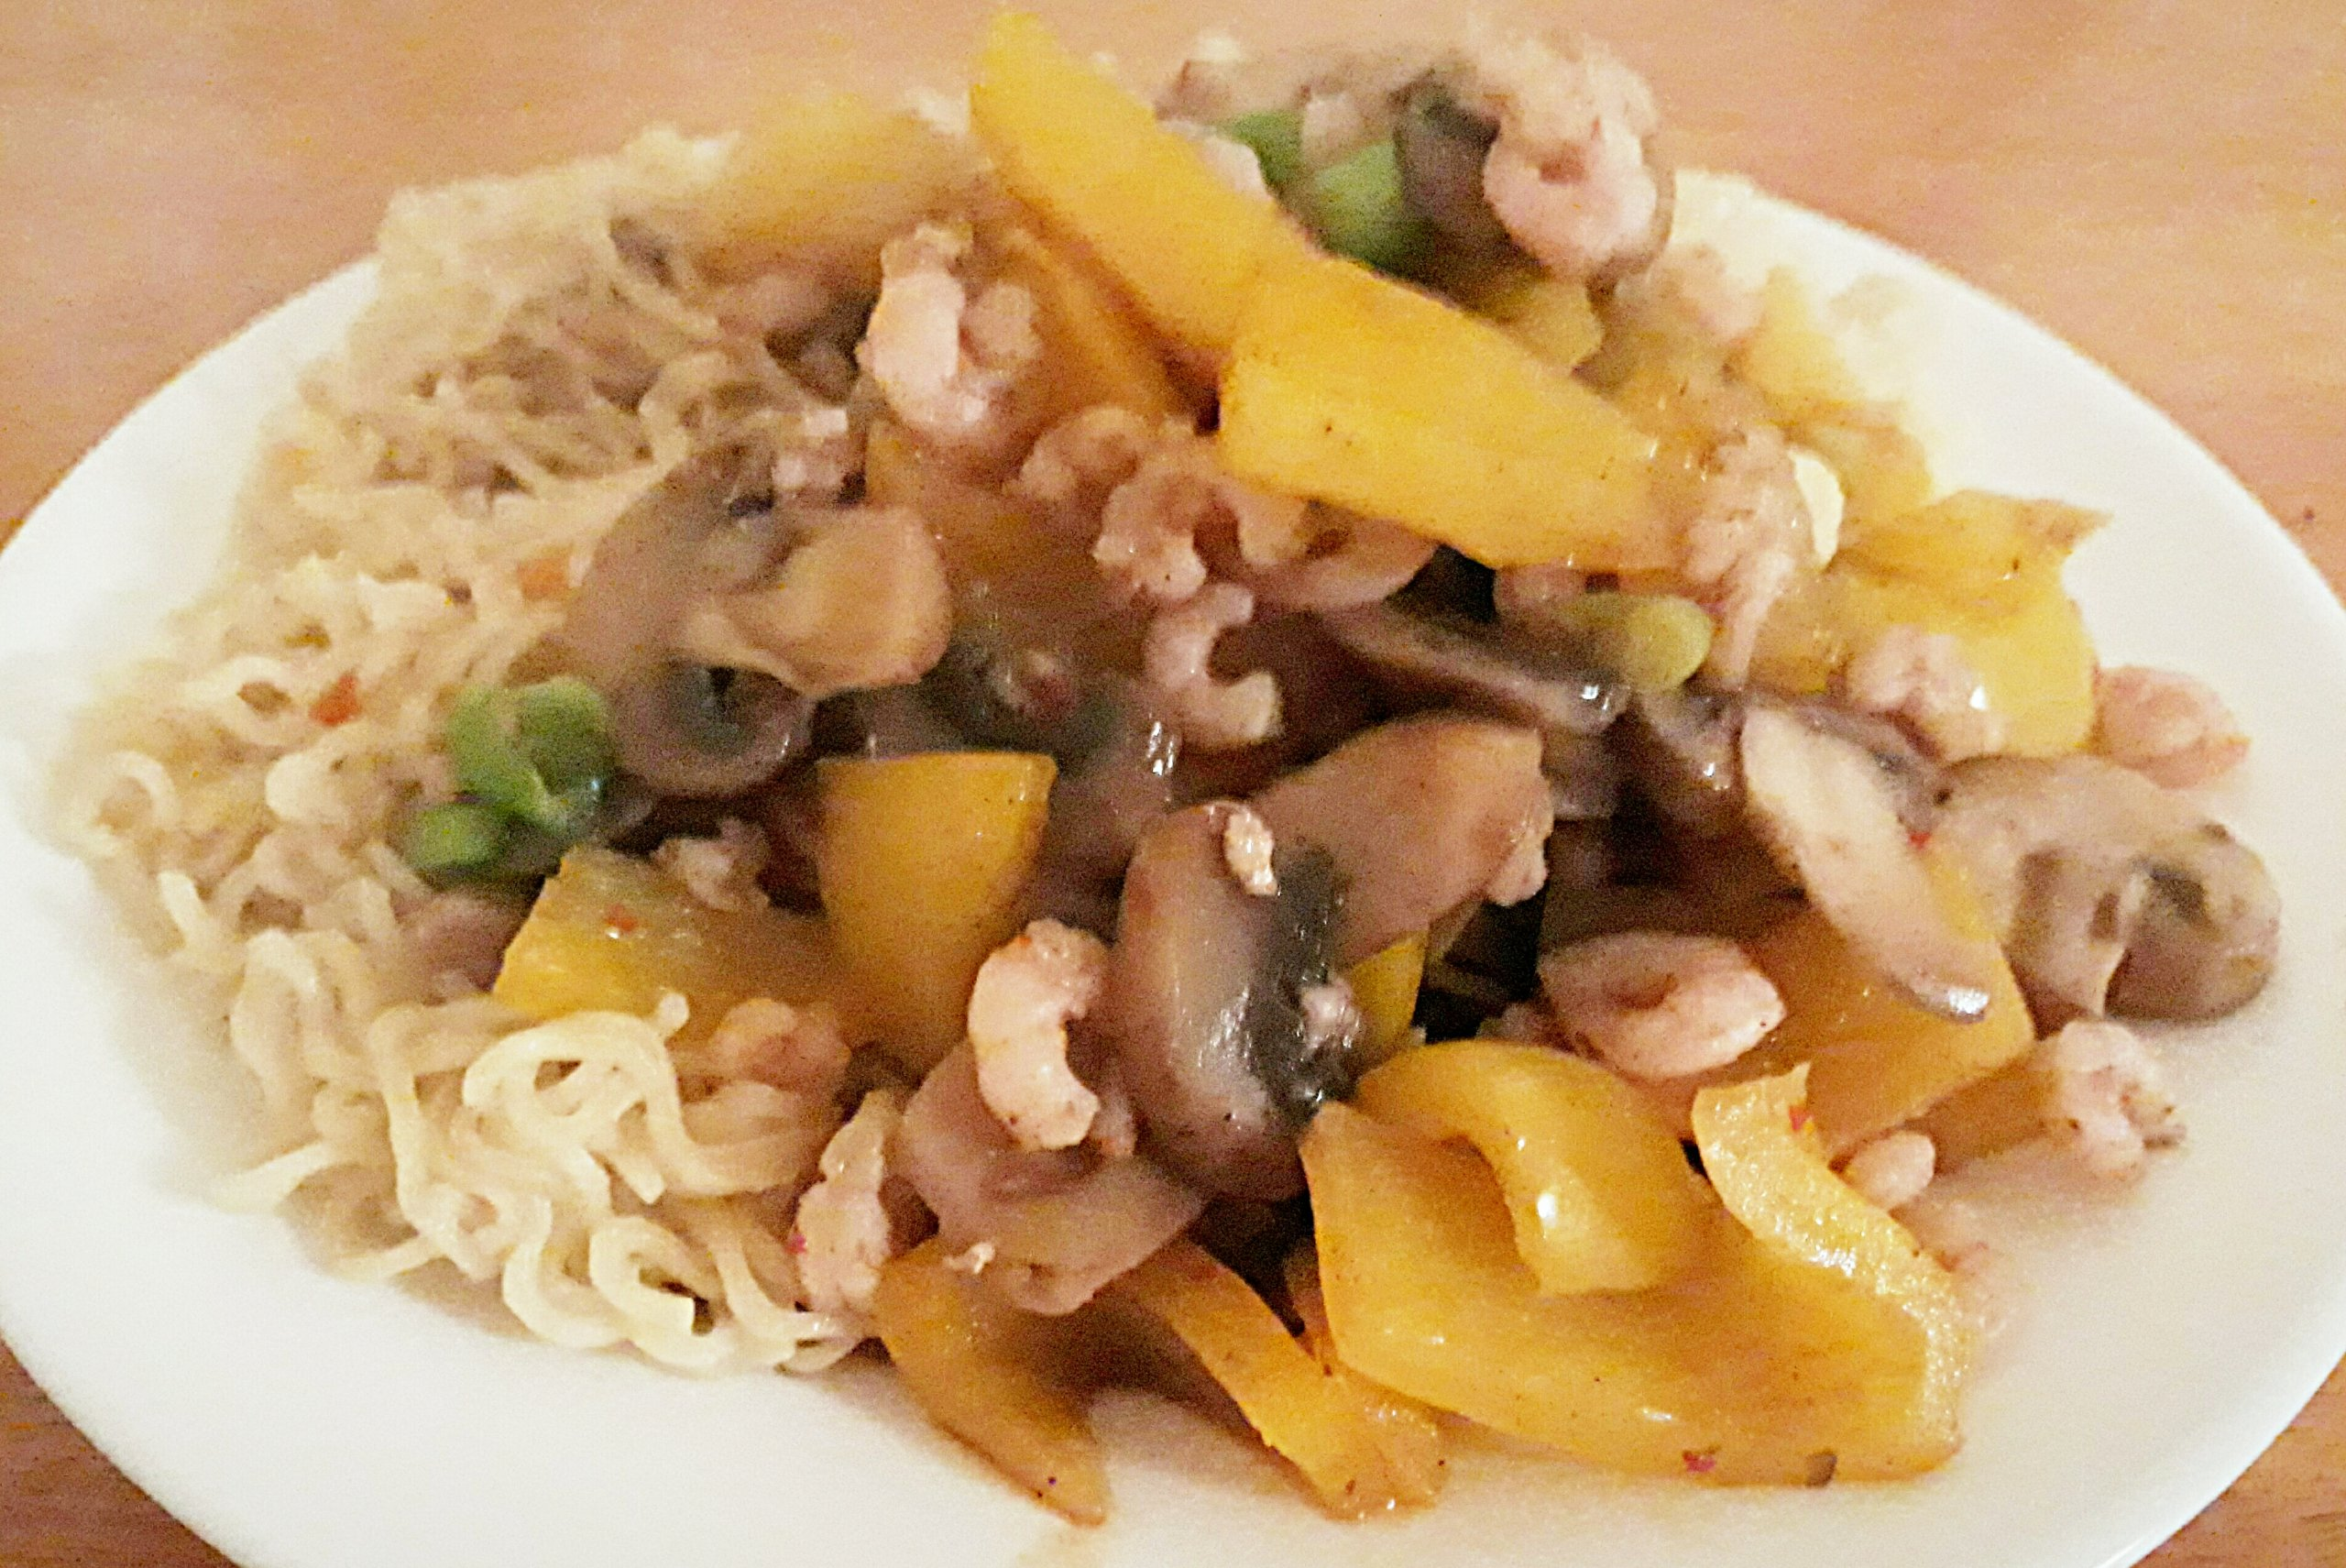 Spicy Prawns with Noodles/1&1/2 Syns with Slimming World